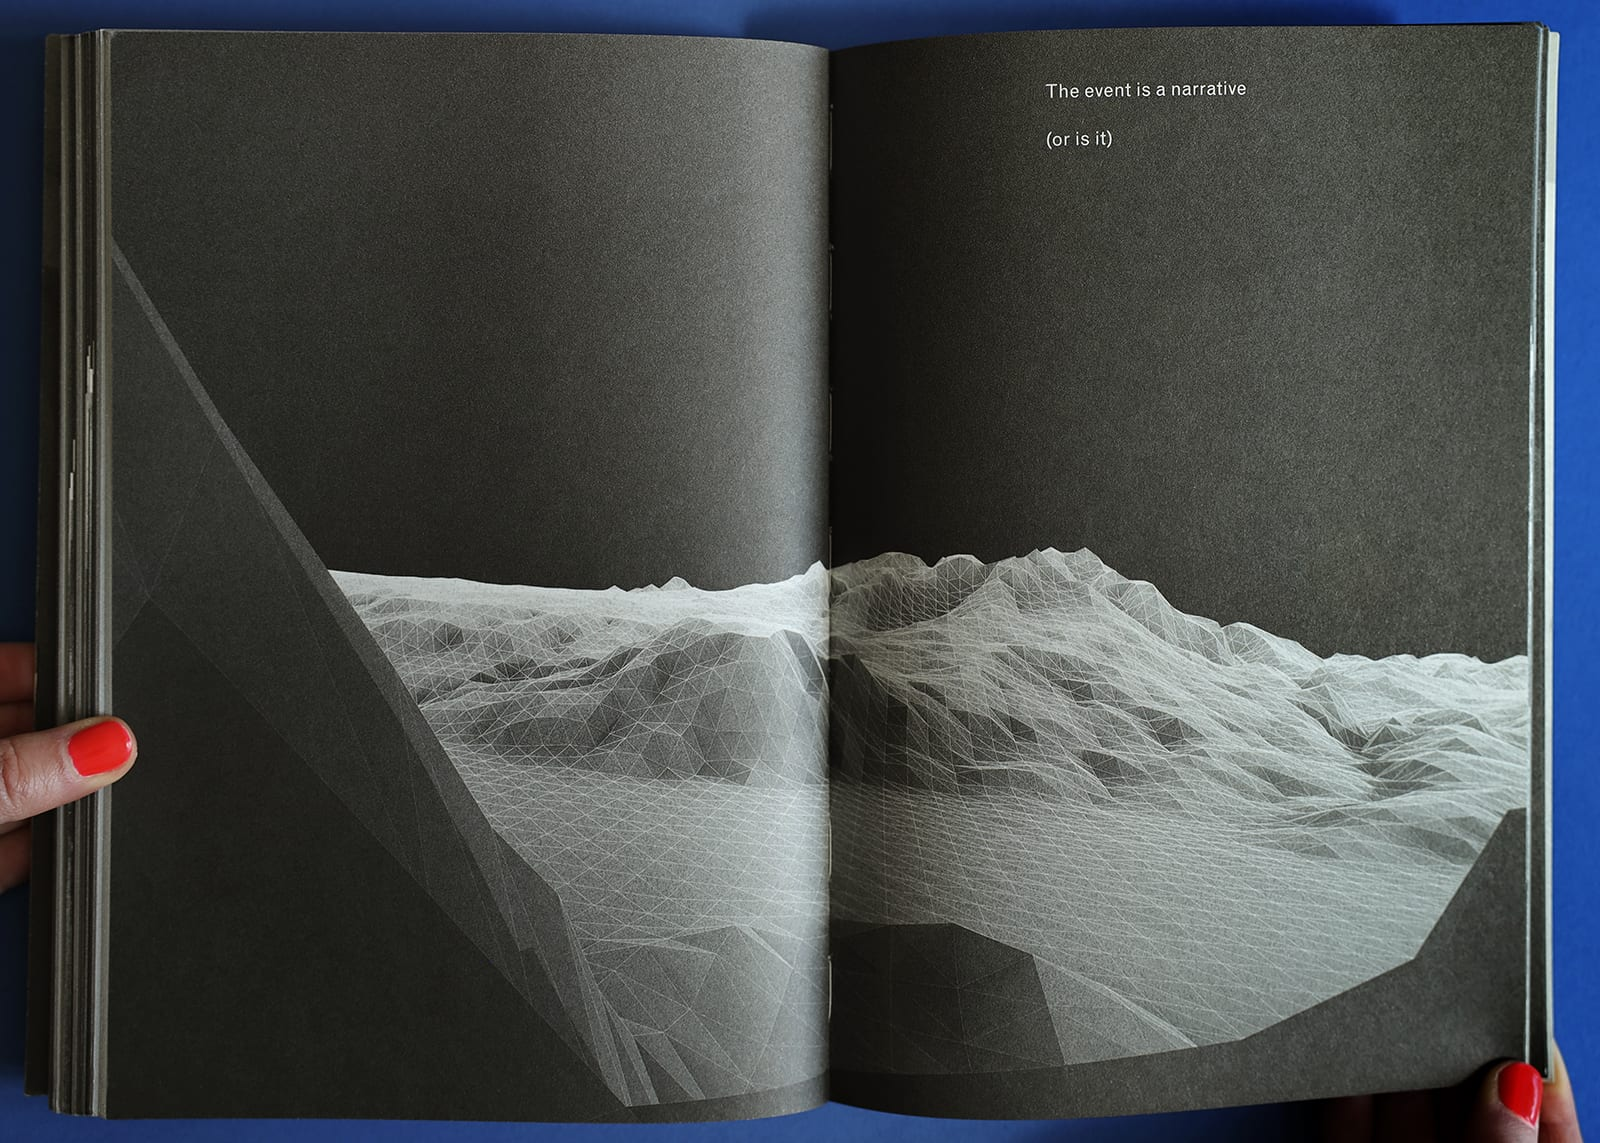 """Open-book spread of Imaginary Explosions, page 85. Above black-and-white graphic of mountain topography, text reads, """"The event is a narrative (or is it)"""""""